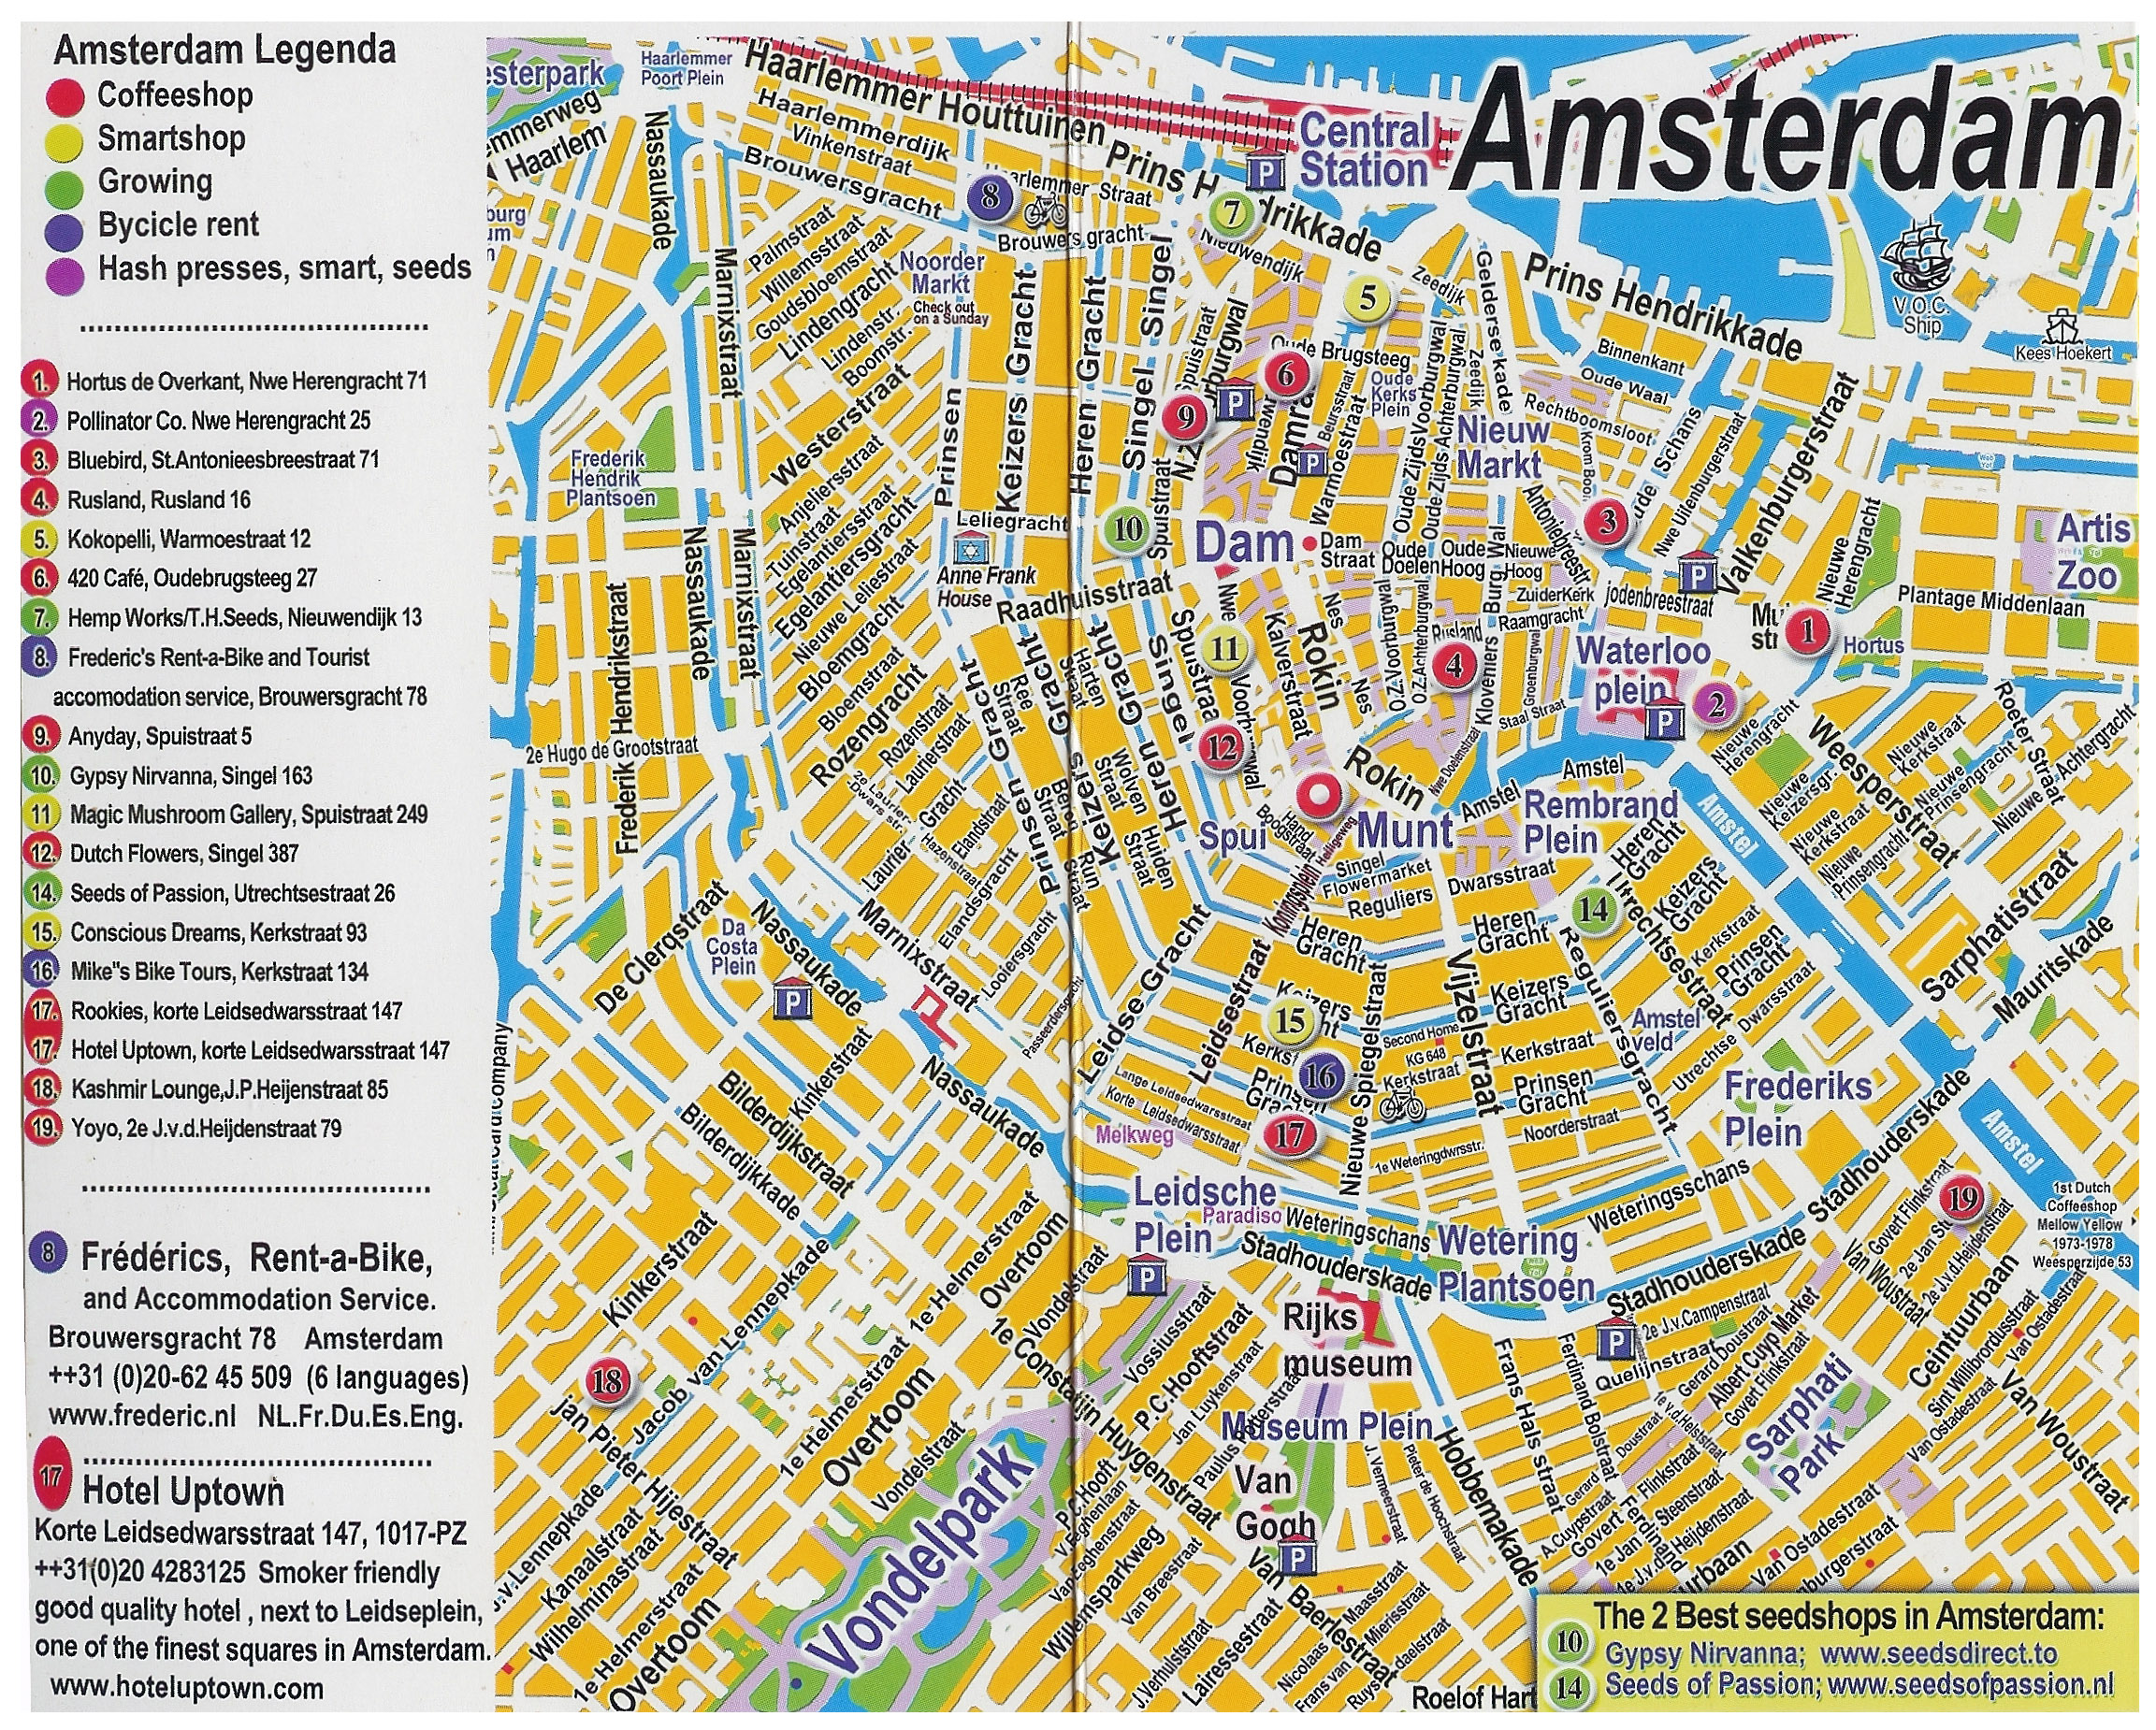 Large detailed tourist map of central part of Amsterdam city